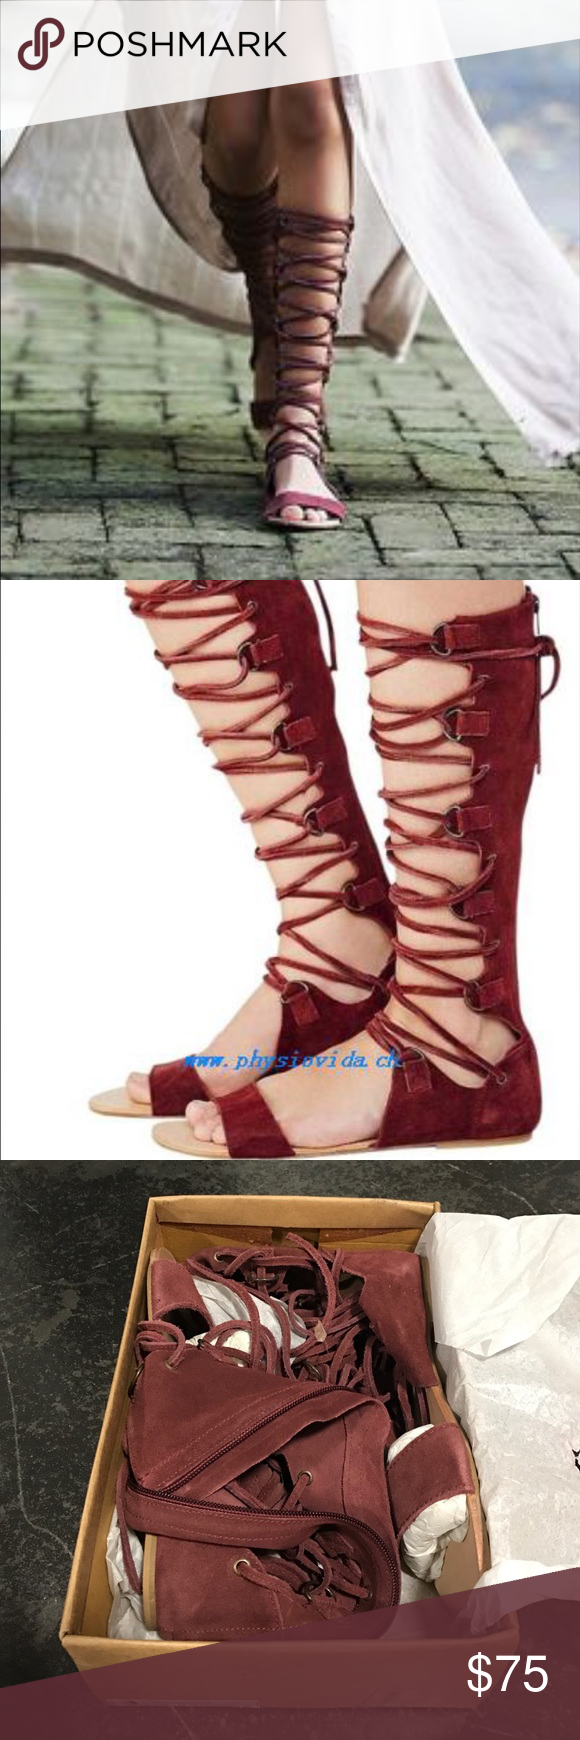 🆕 Free People Gladiator Sandals in Ox Blood 👣 Brand new in box! Free People Gladiators in Ox Blood (gorgeous color!!). Women's size 9. Lace up so it will fit almost all calf sizes. Smoke and pet free home. Thanks for looking! Free People Shoes Sandals